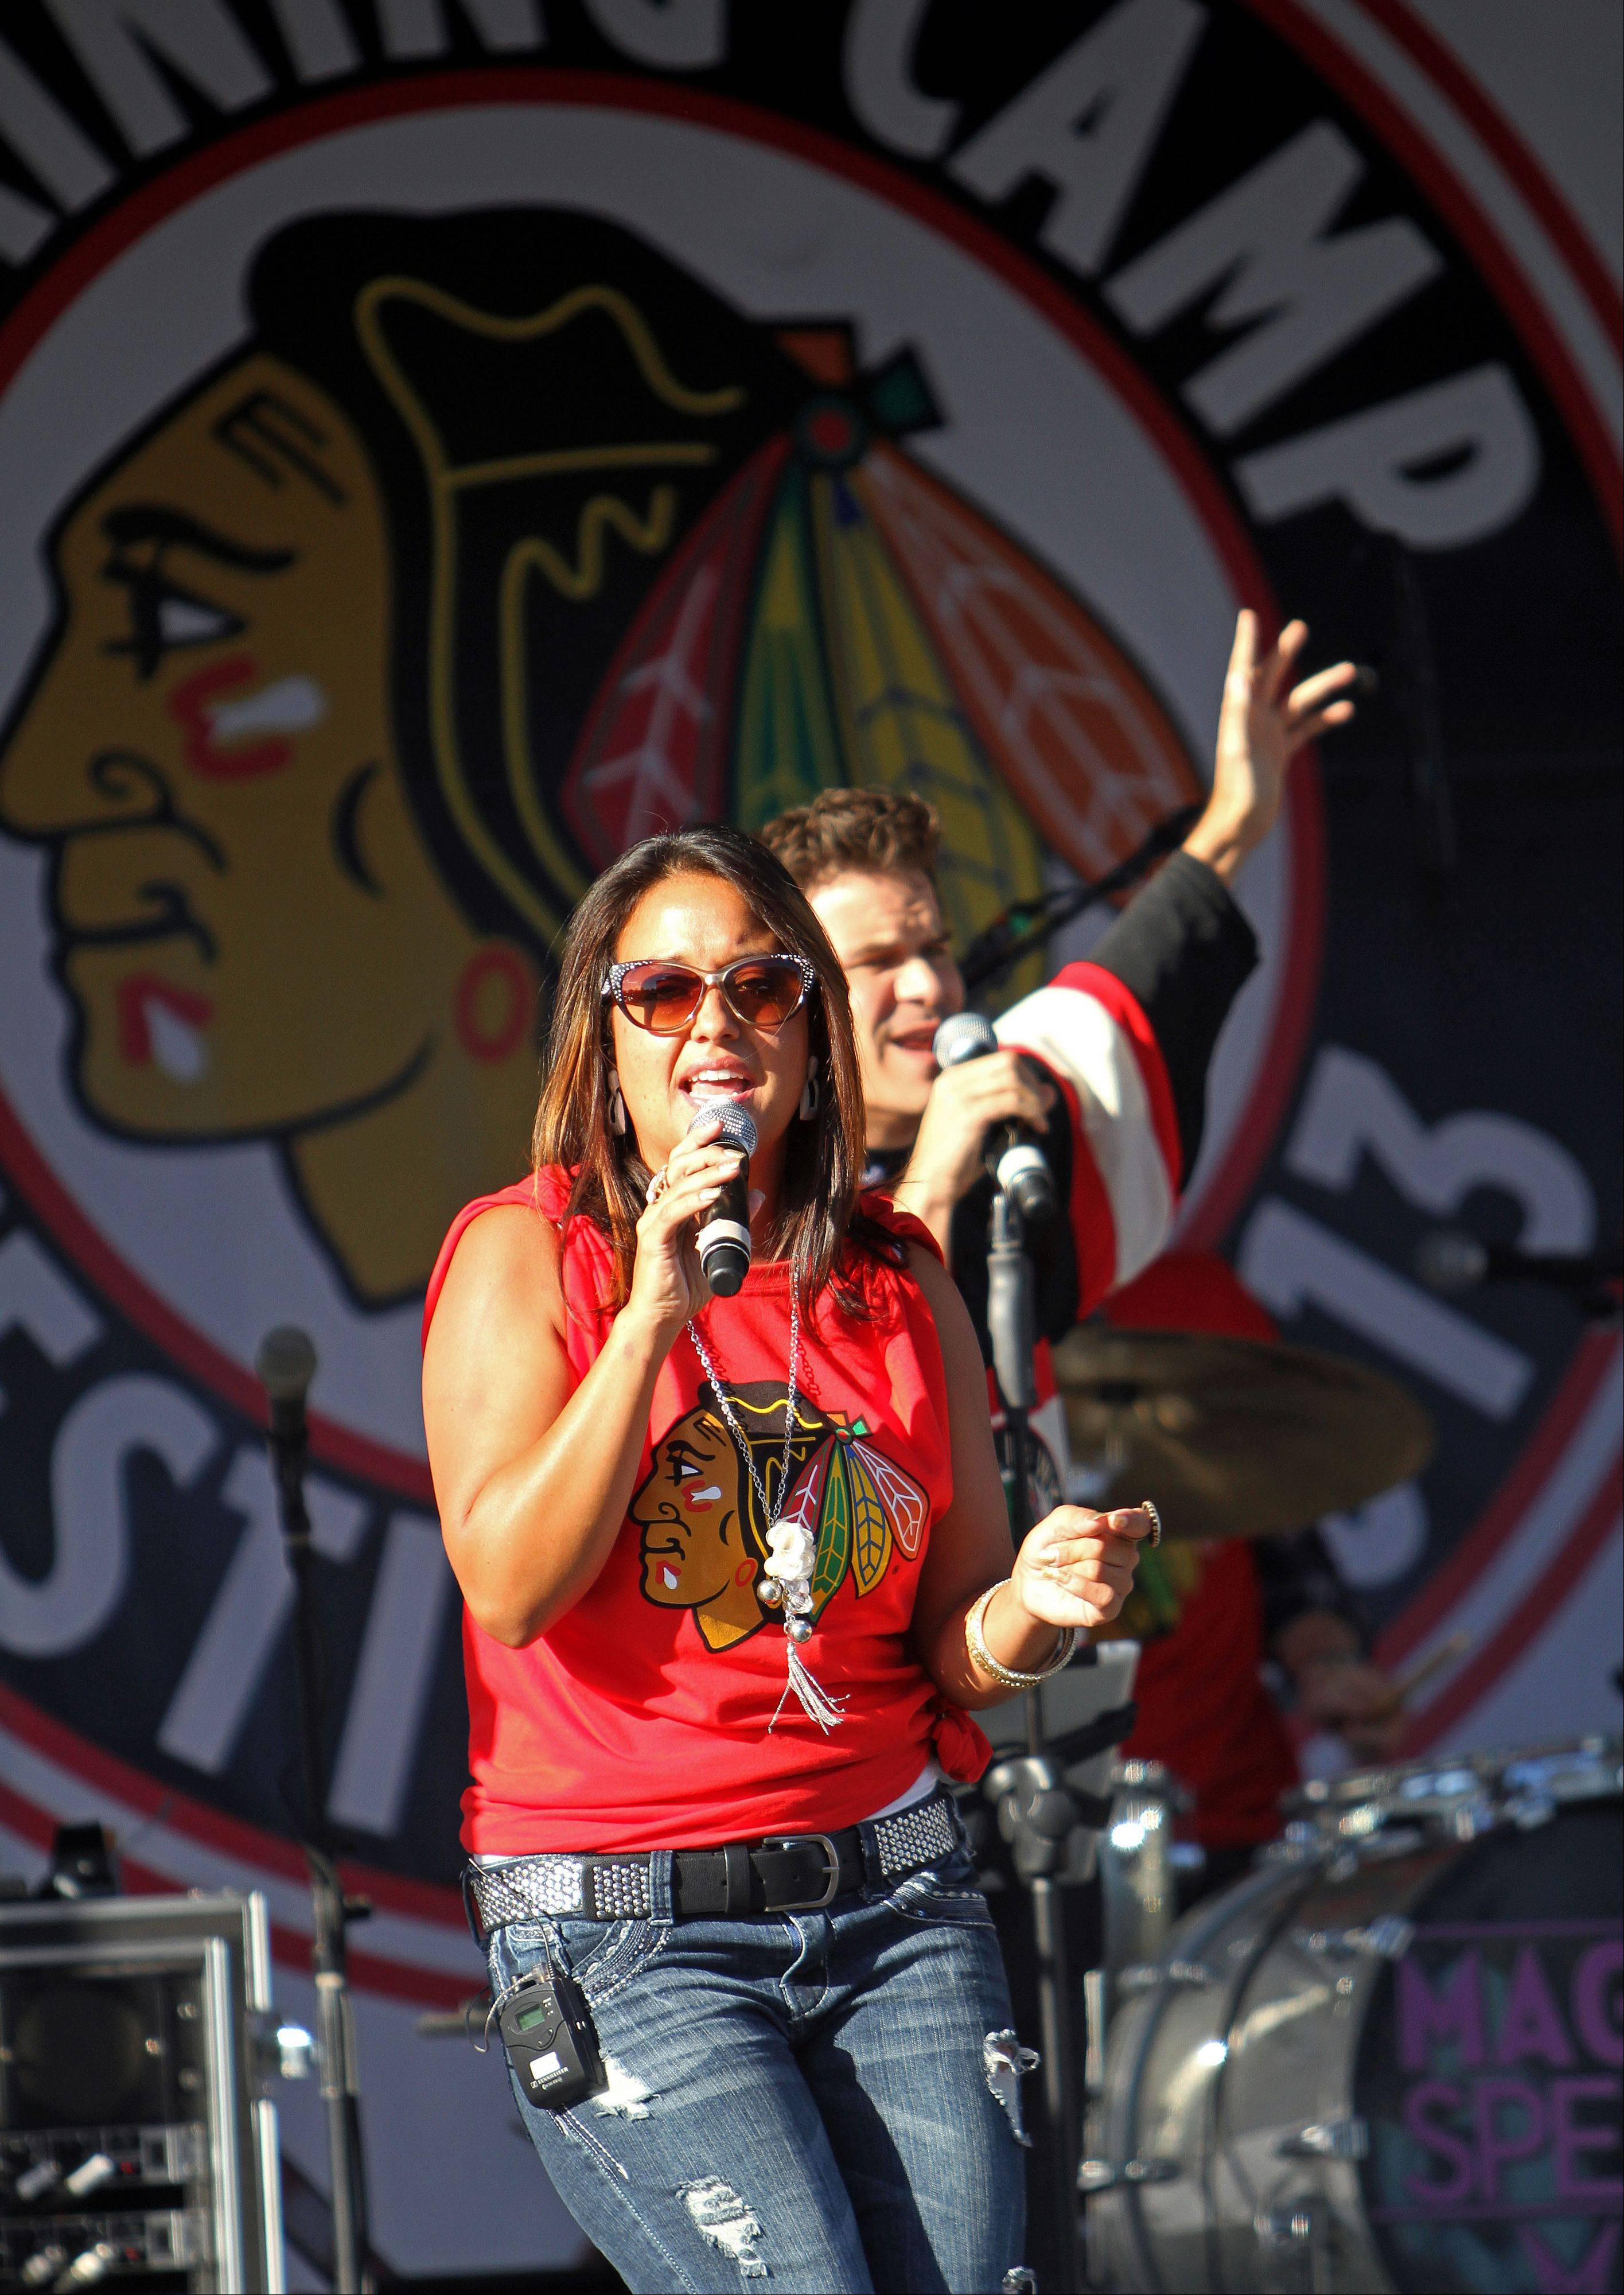 The band Maggie Speaks performs for fans in the parking lot at the United Center.